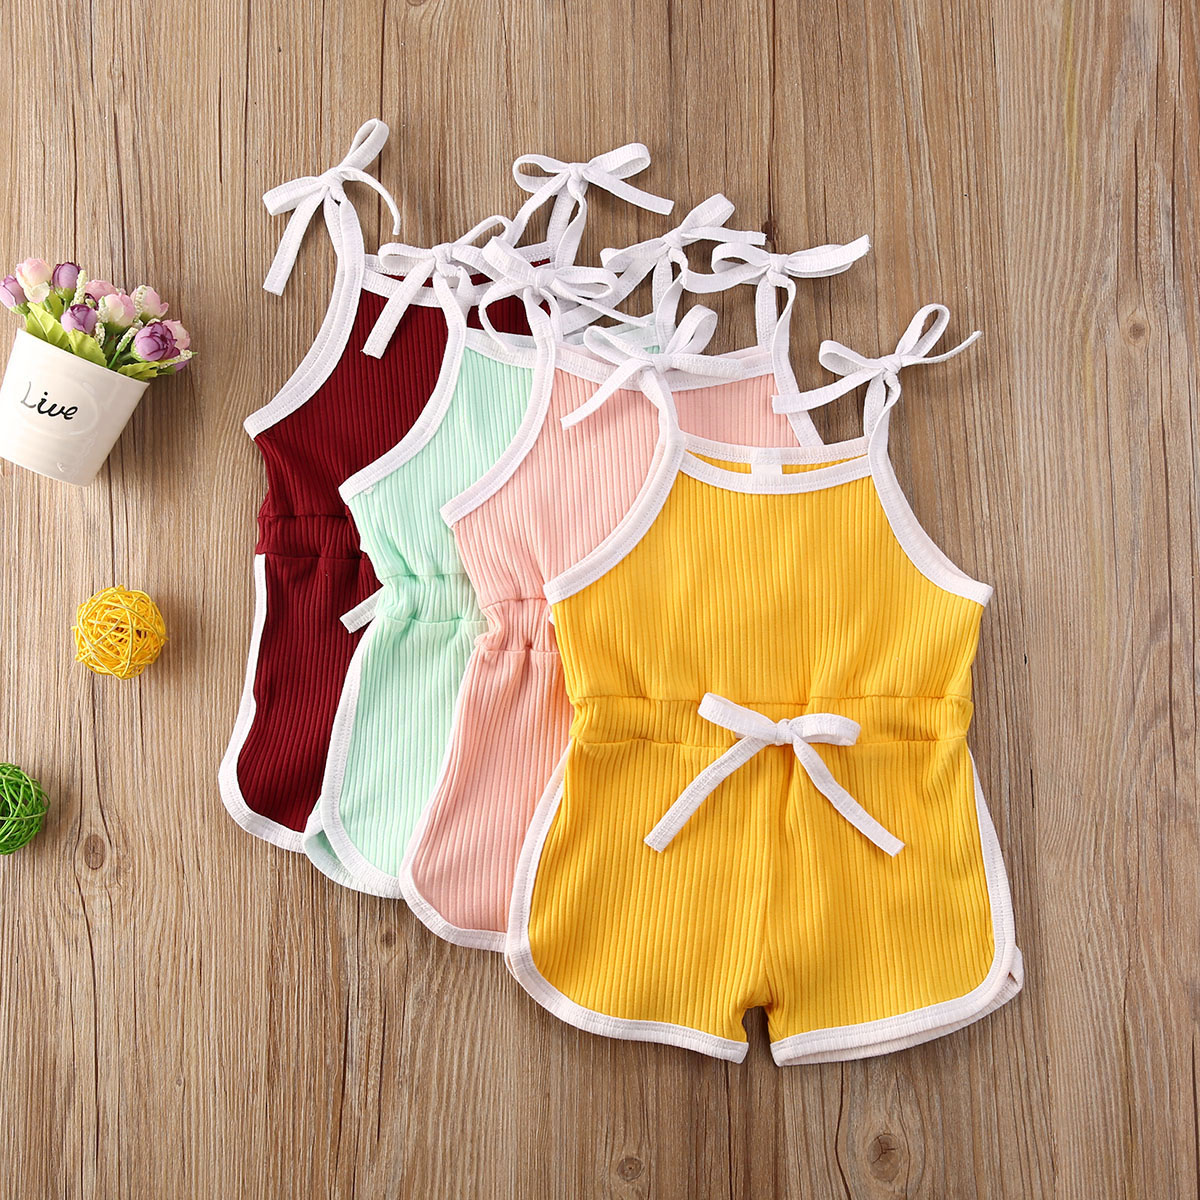 2020 Summer Newborn Baby Girls Boys Cotton Clothes Rompers Jumpsuit Cute Lace Up Striped Casual Toddler Sleeveless Outfits